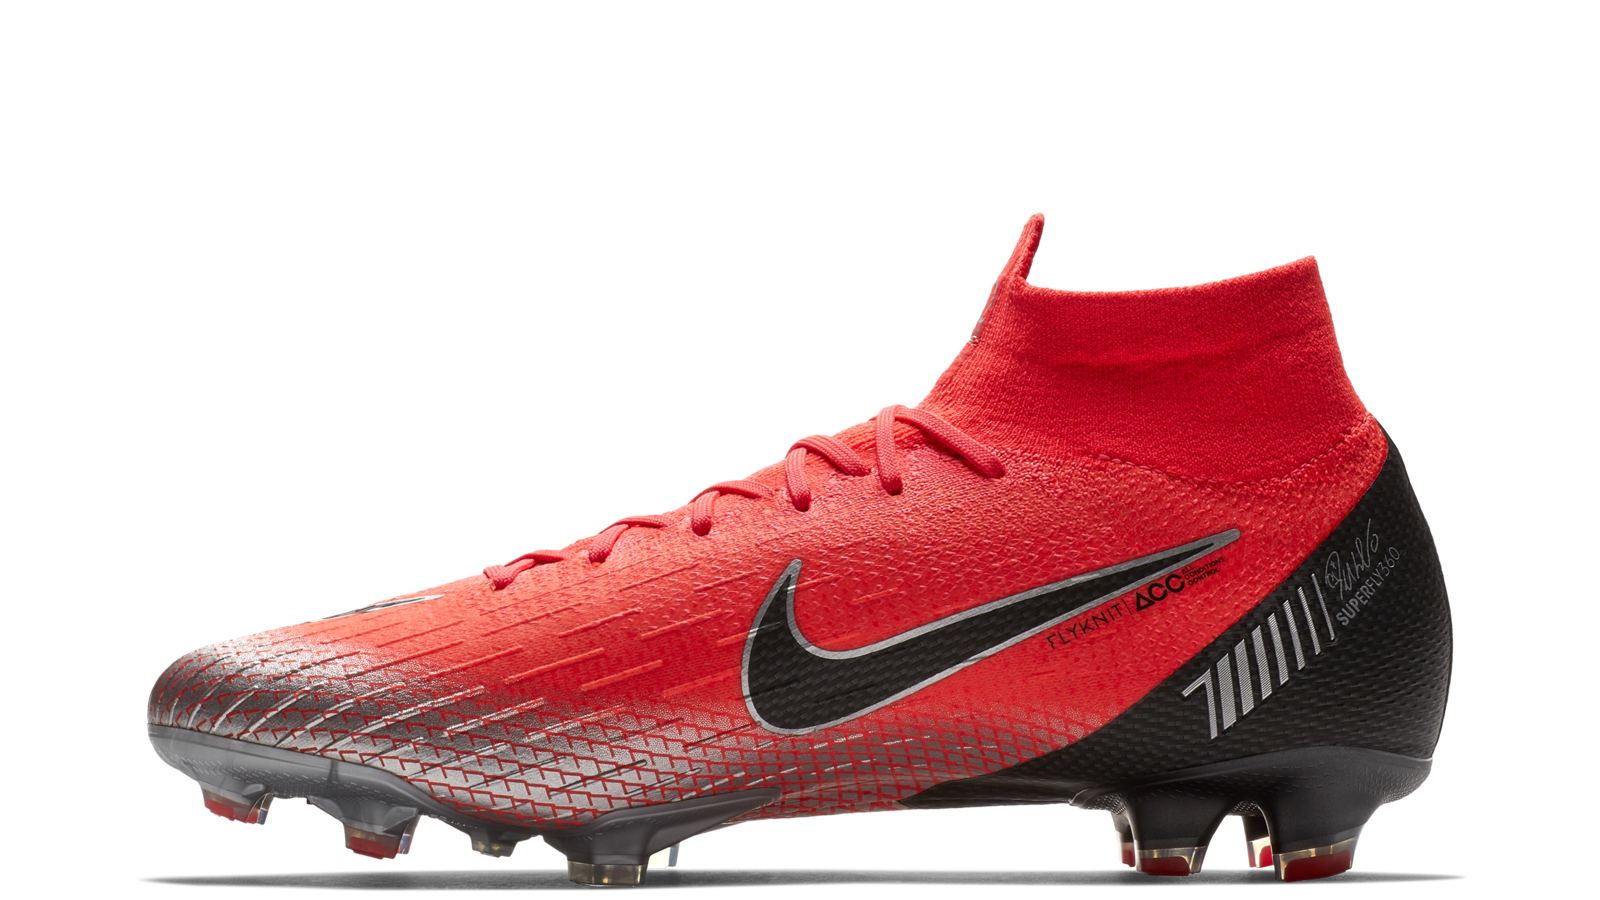 cr7 chapter 6 boots